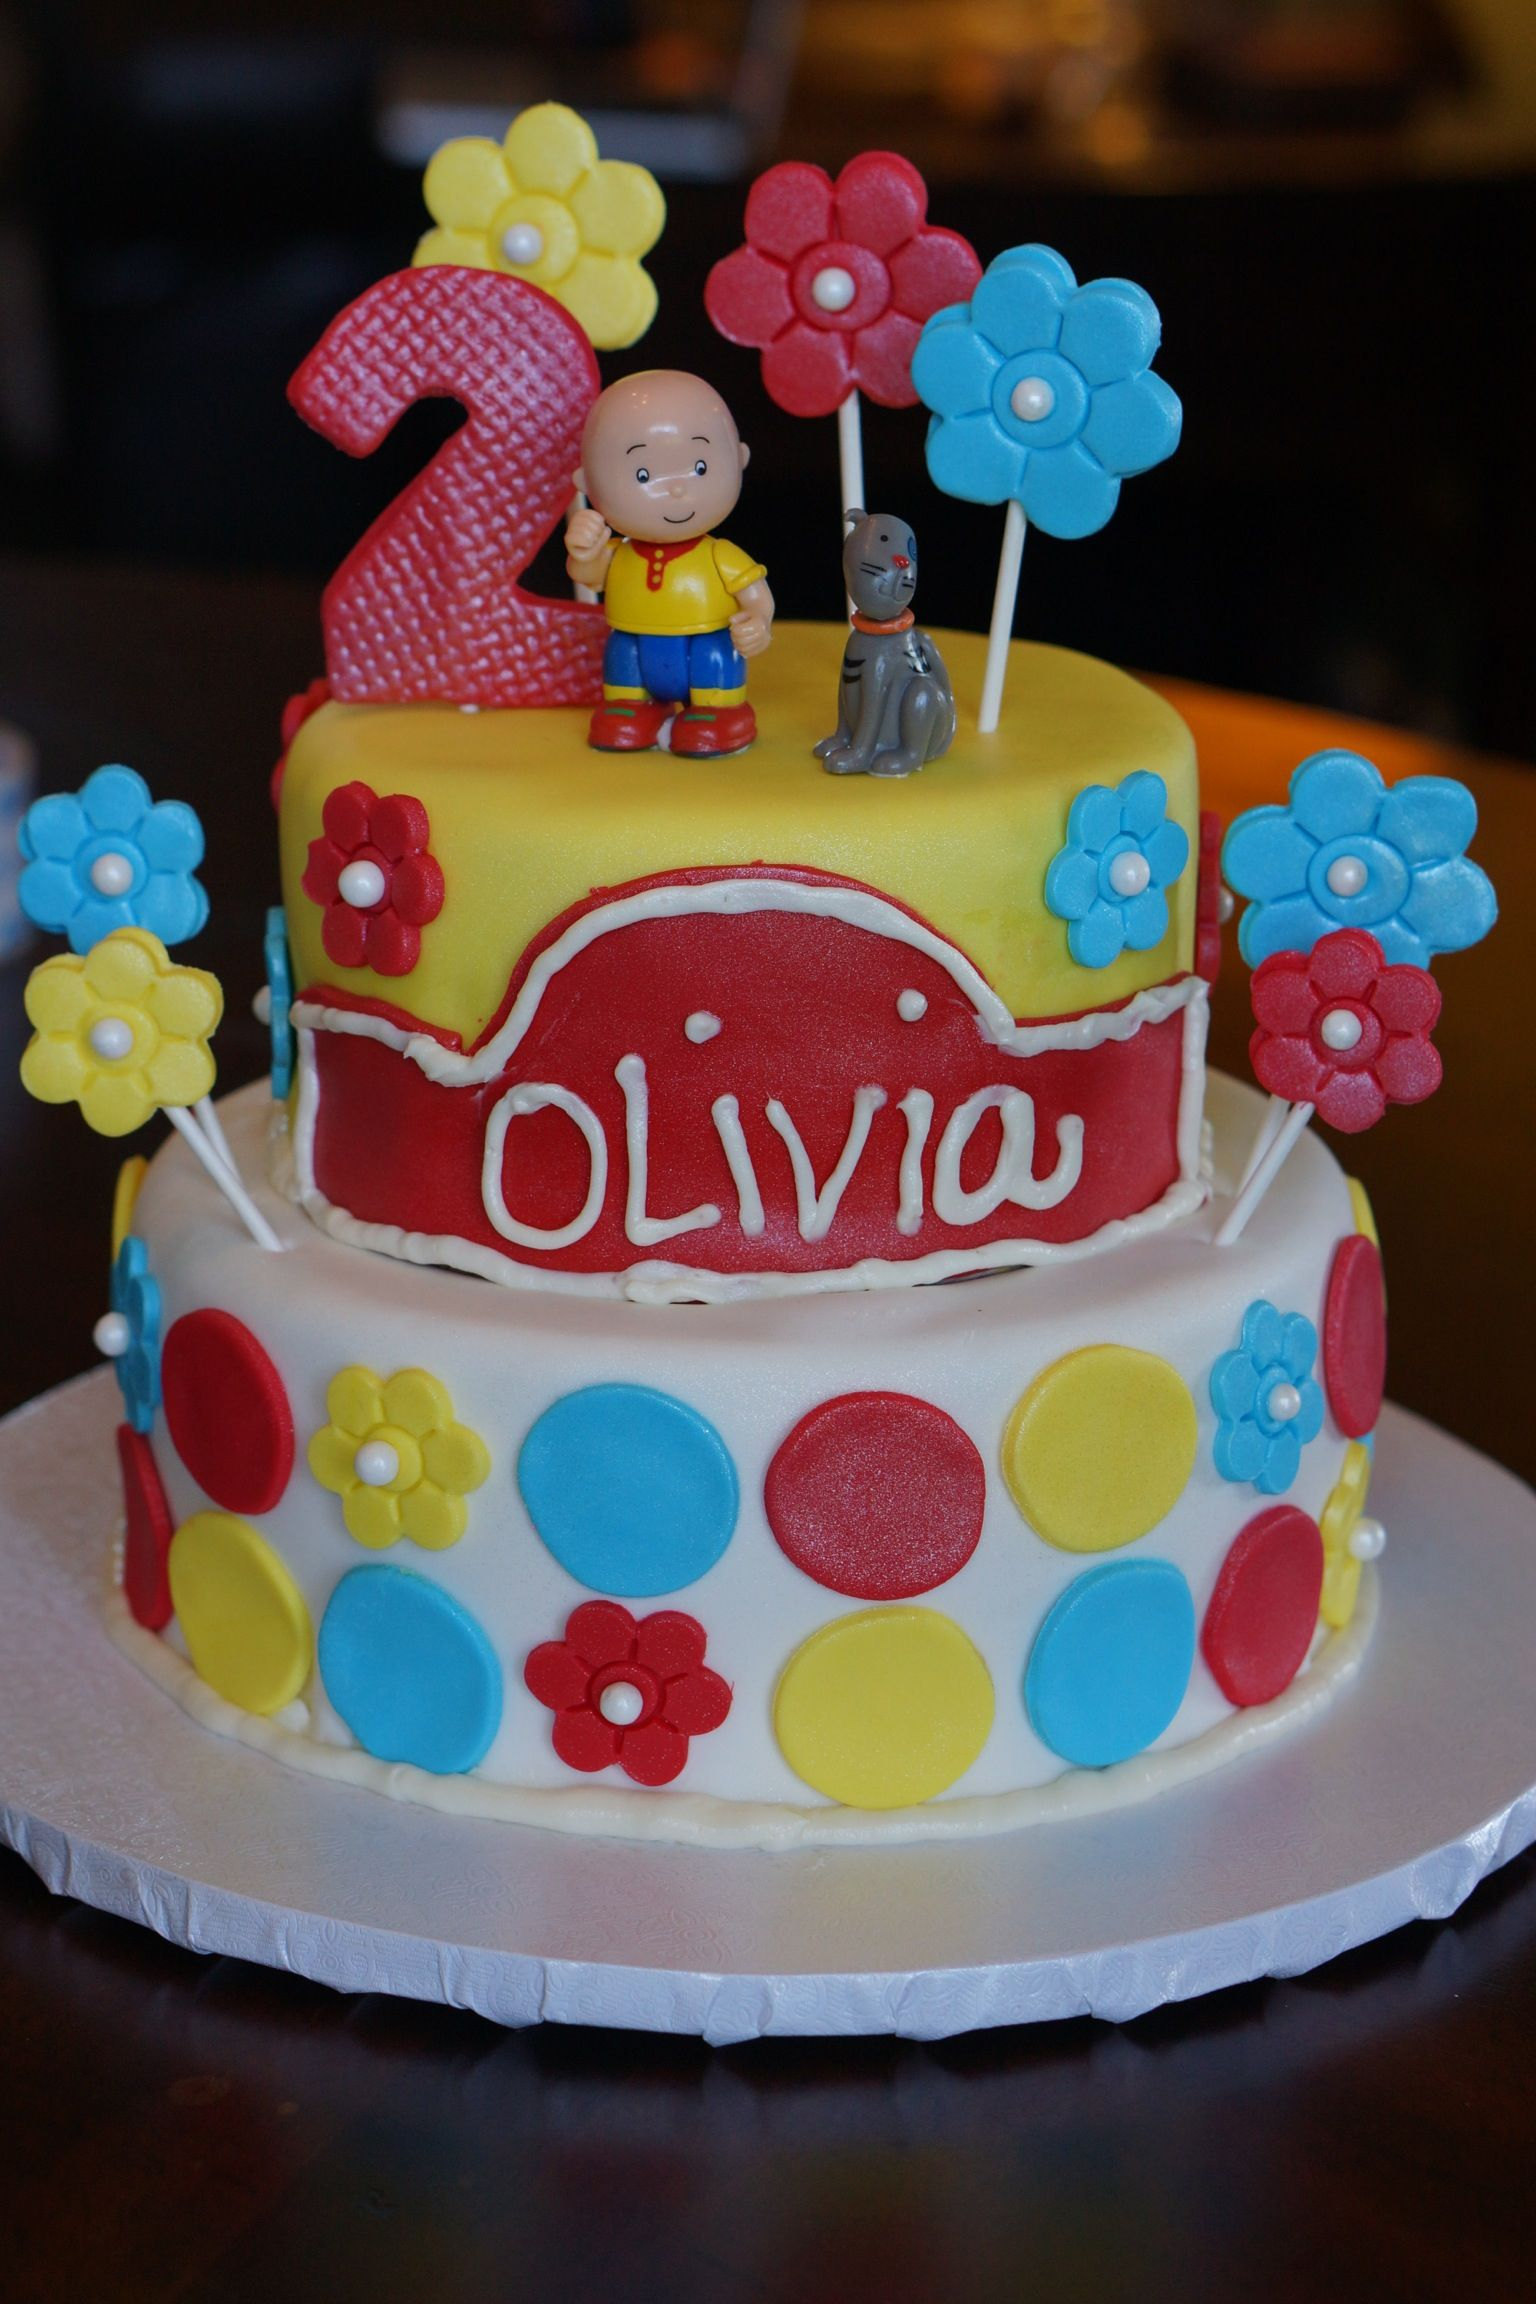 Strange Caillou Cake With Images Birthday Cake Decorating Caillou Funny Birthday Cards Online Elaedamsfinfo